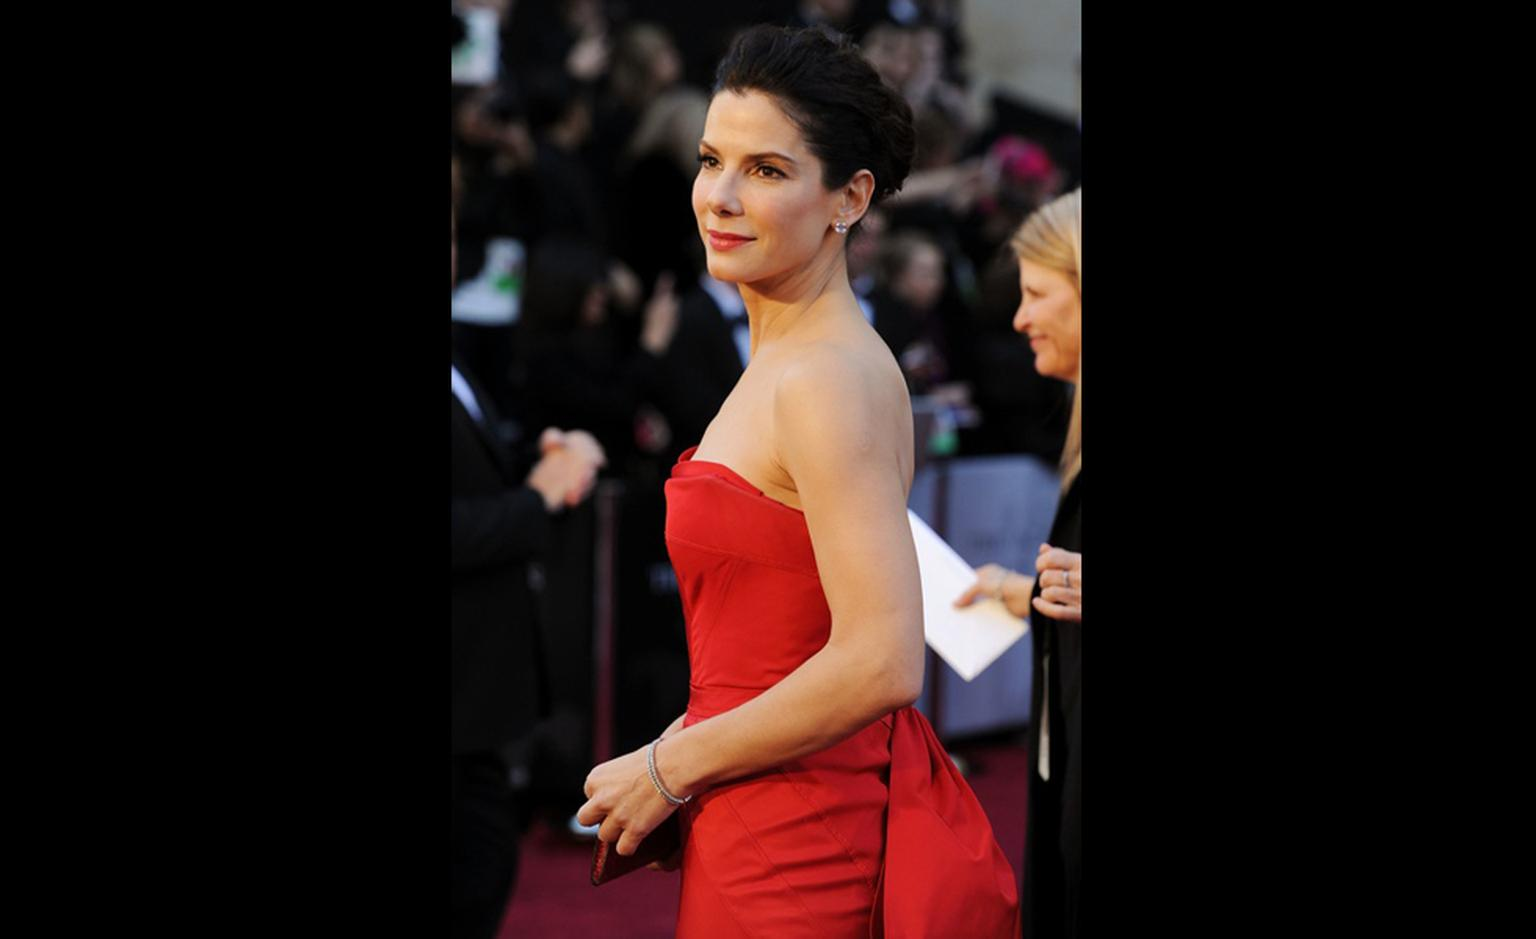 SANDRA BULLOCK wearing Harry Winston emerald Cut Diamond Earstuds, 5.5 carats each, Vintage Diamond Bead Bracelets